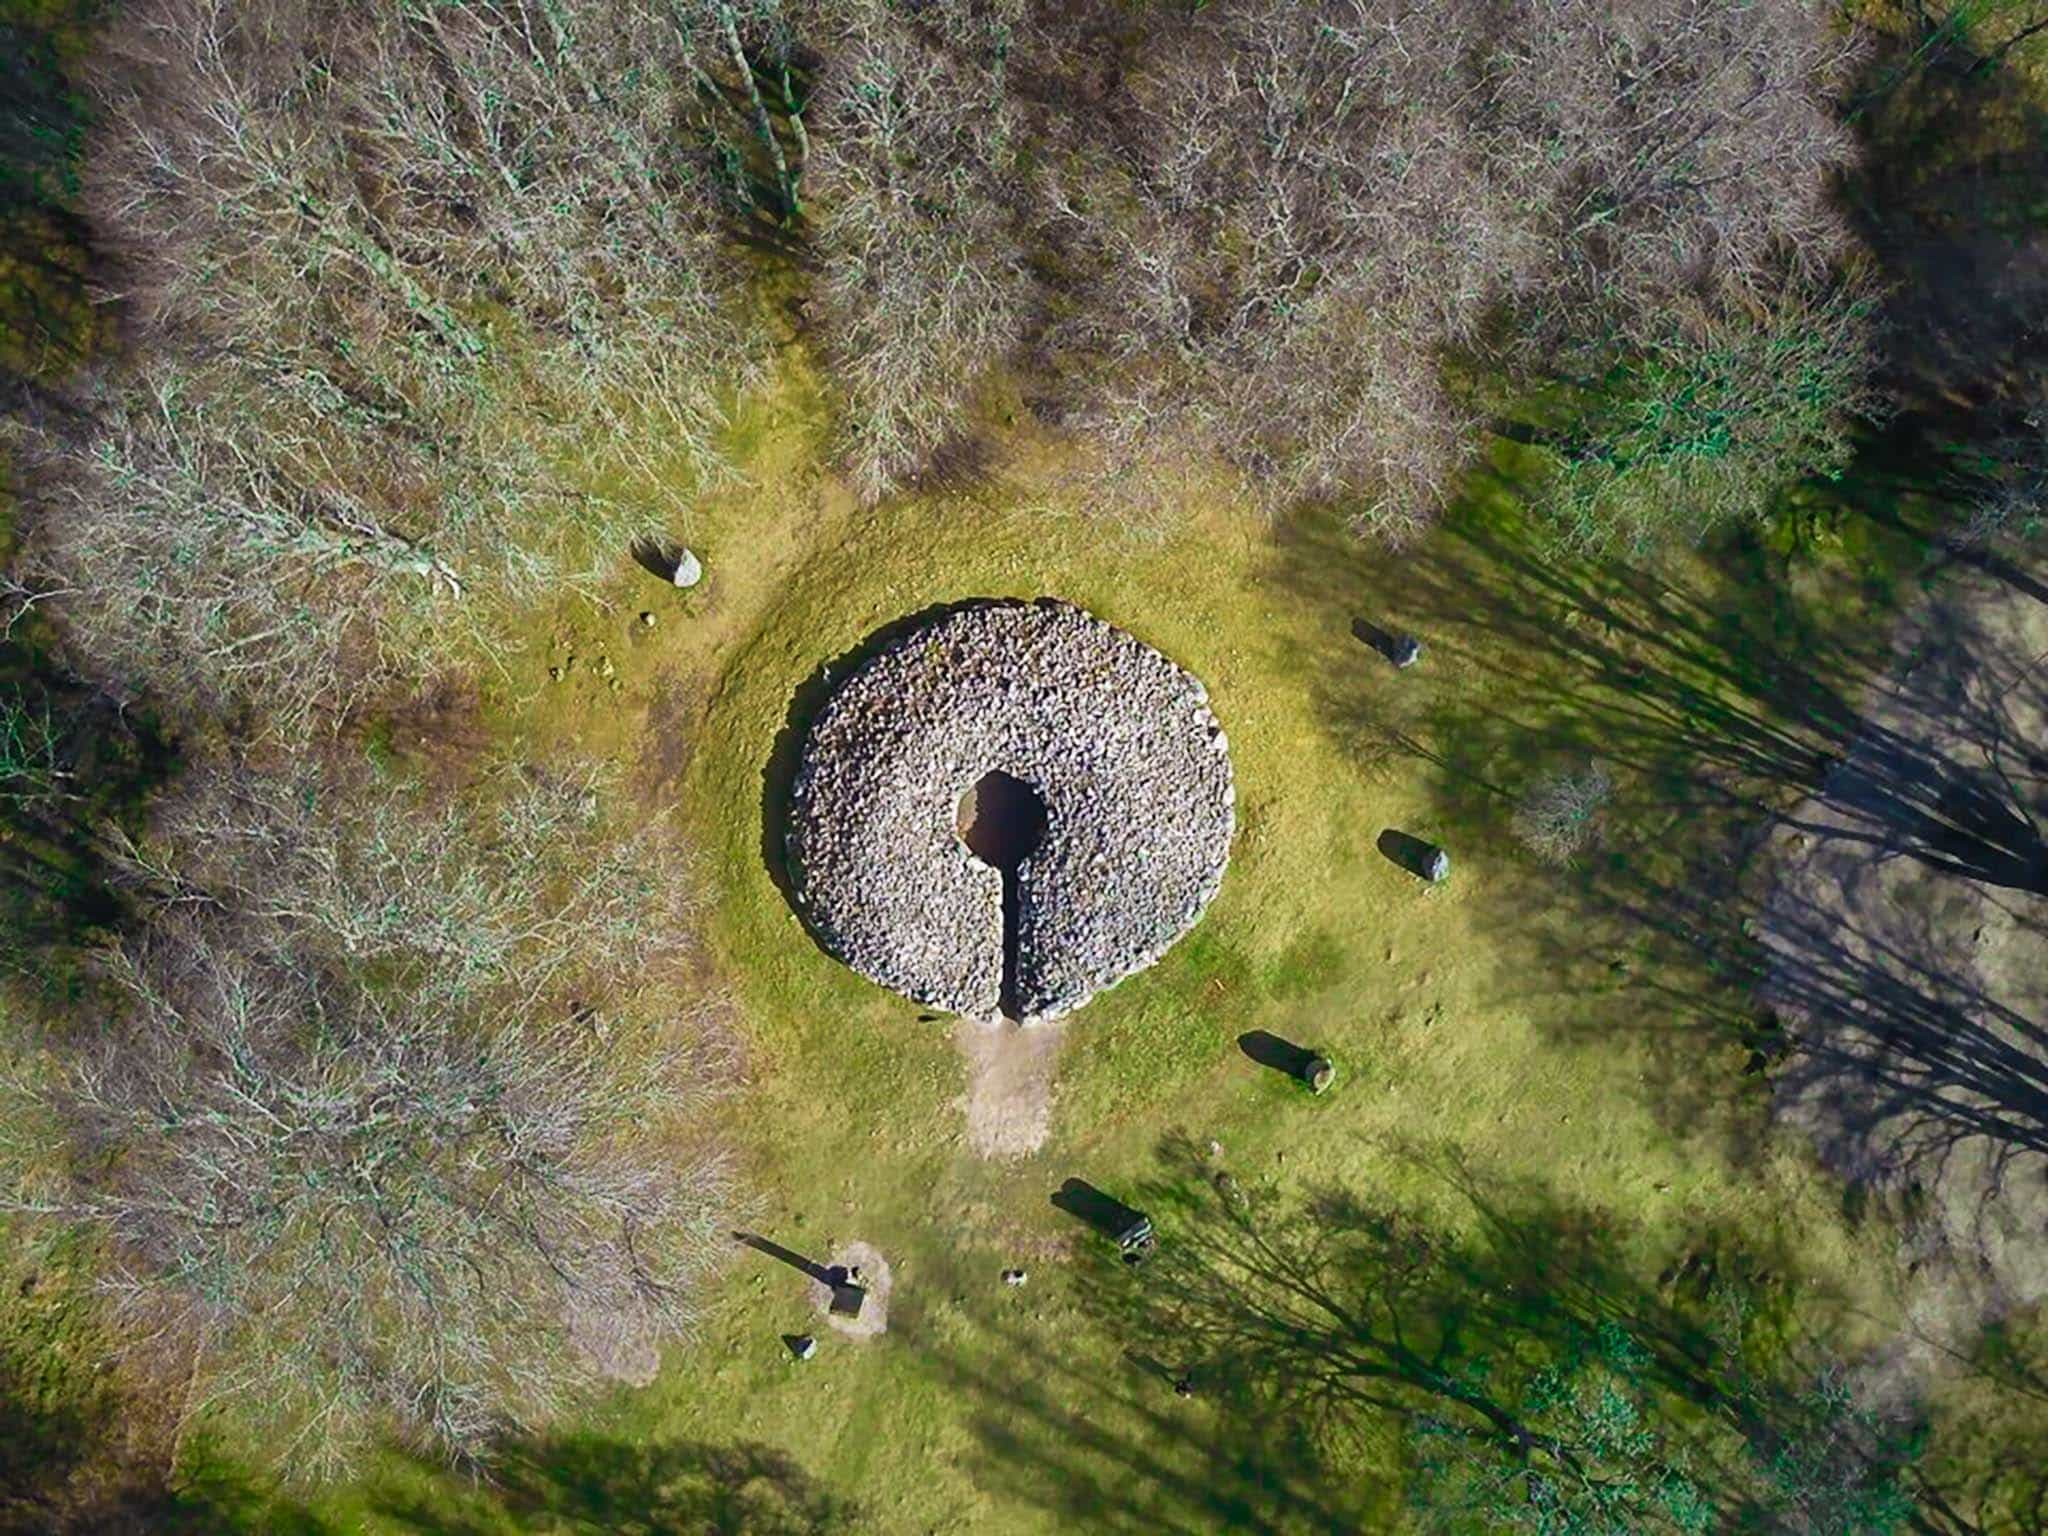 Things to do in Inverness: Visit Clava Cairn